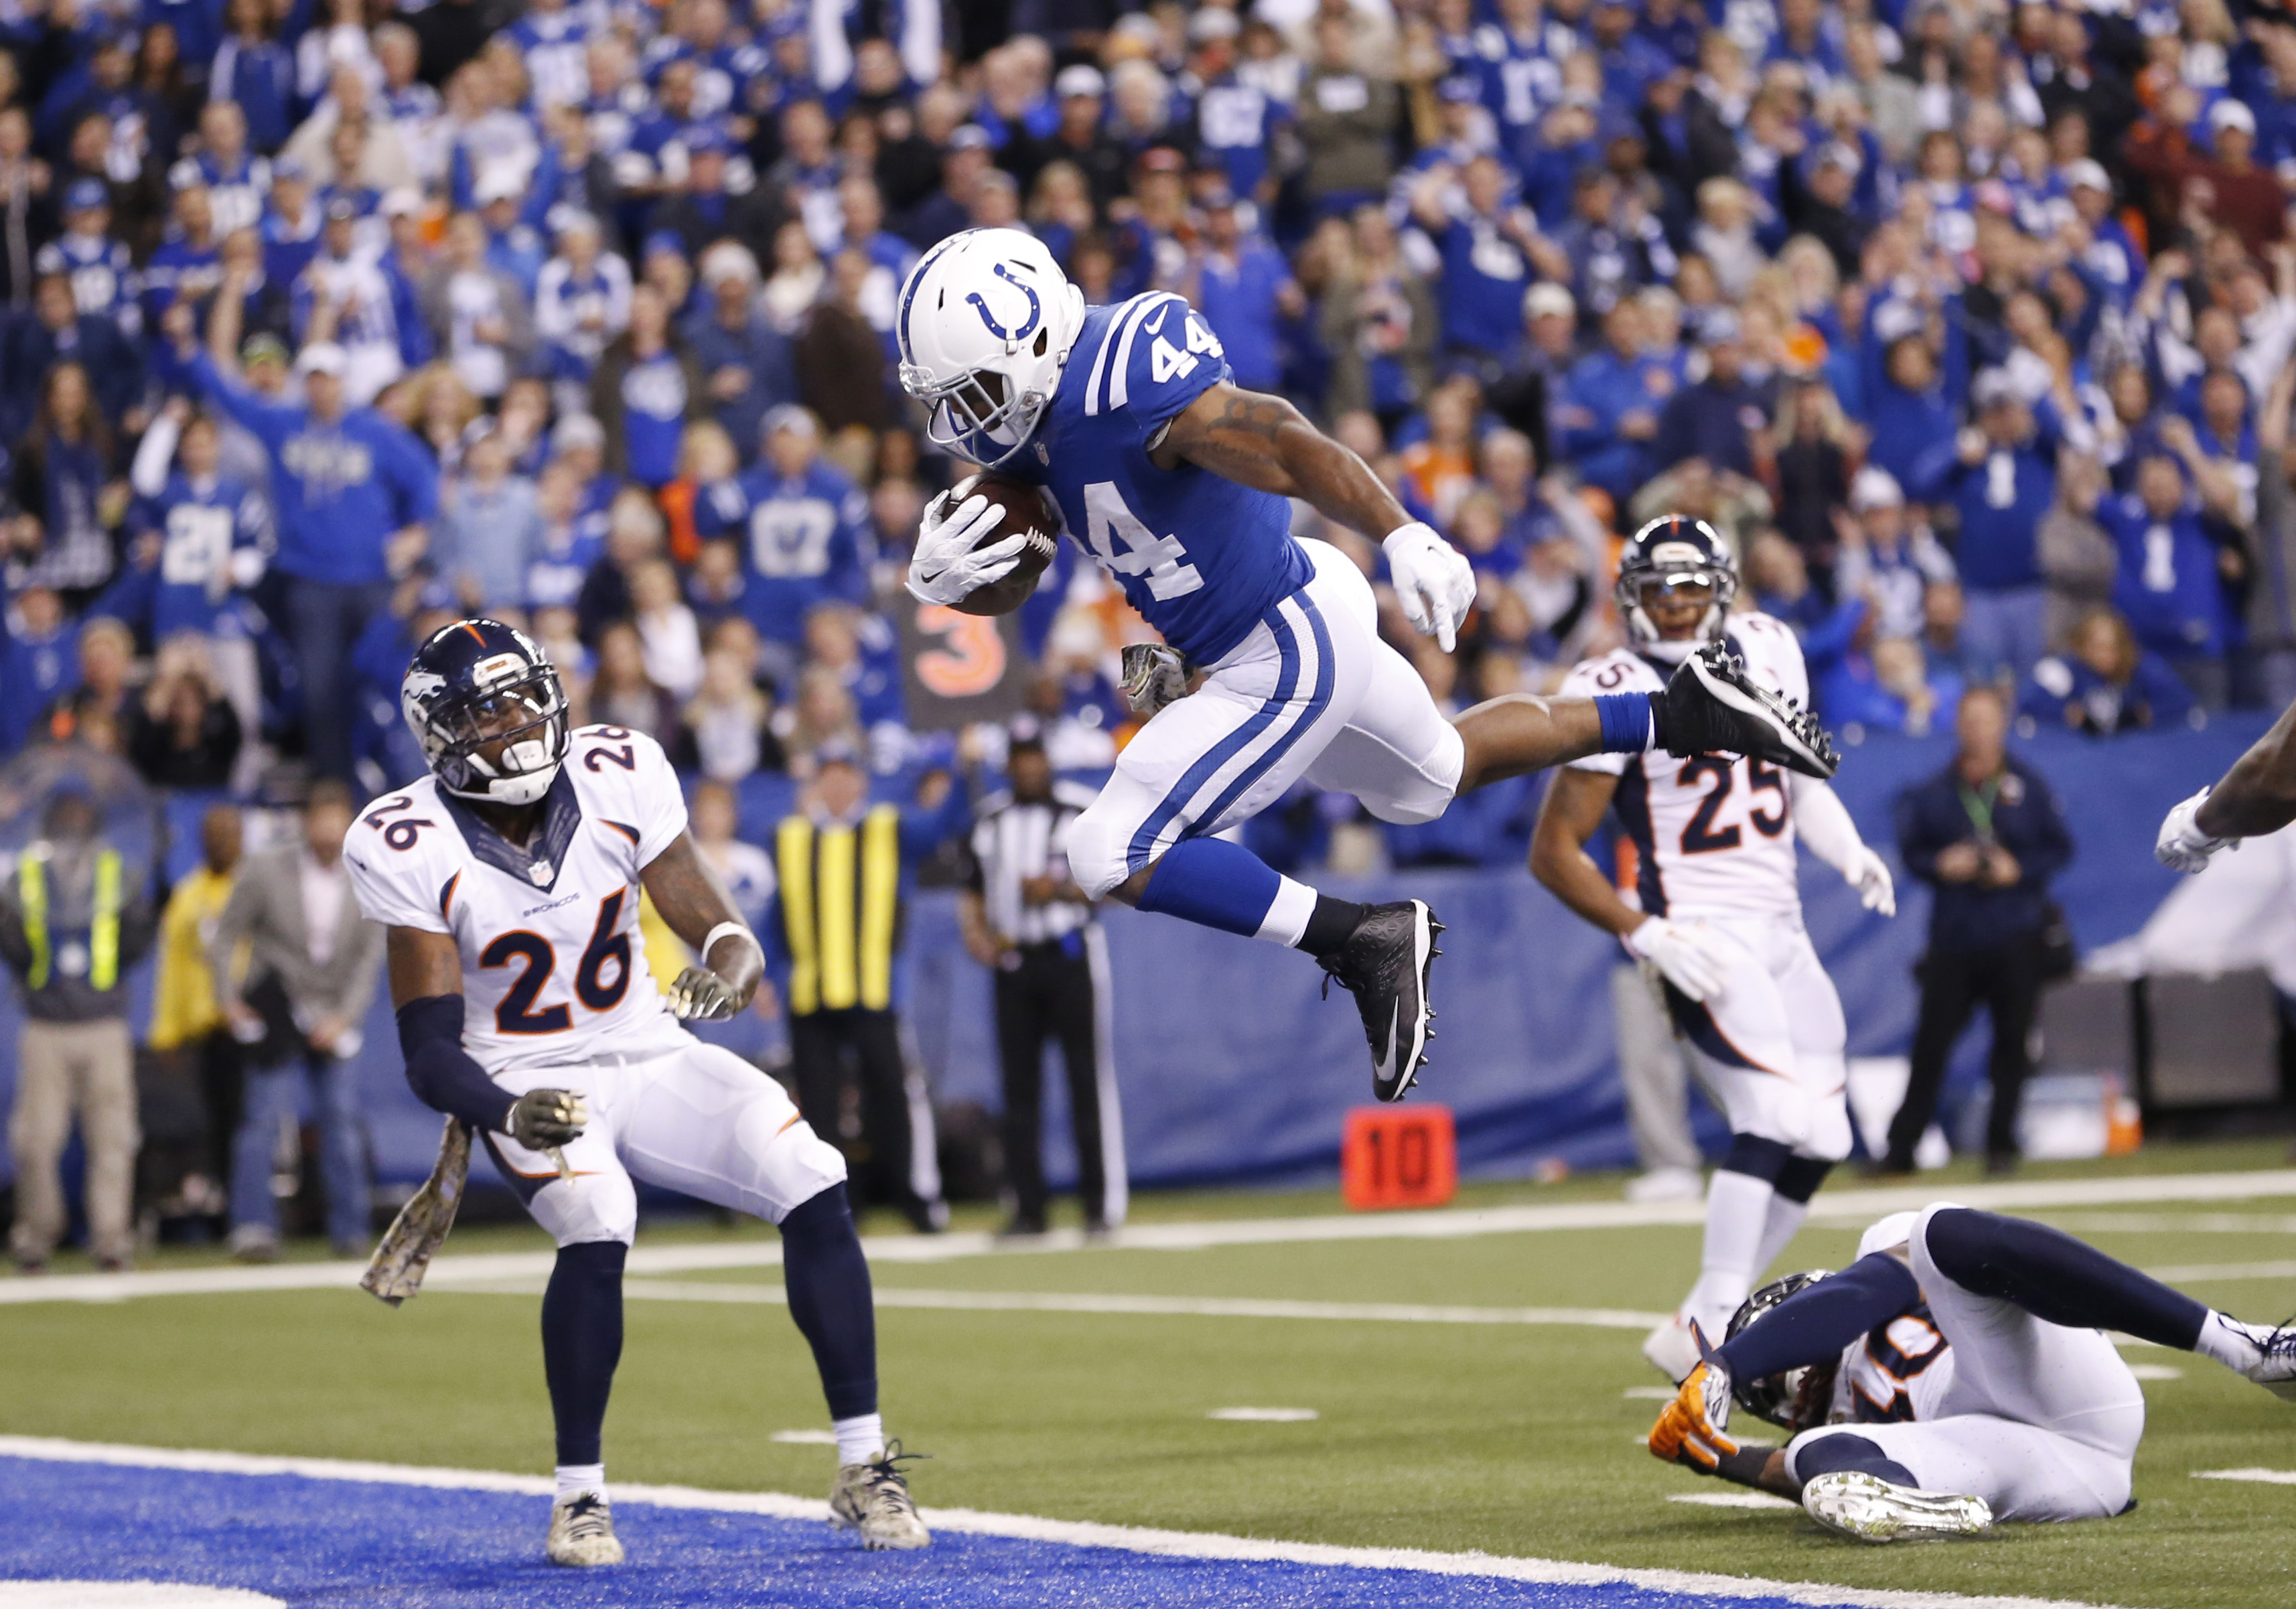 Indianapolis Colts' Ahmad Bradshaw (44) goes in for a eight yard touchdown reception during the second half of an NFL football game against the Denver Broncos, Sunday, Nov. 8, 2015, Indianapolis. (AP Photo/AJ Mast)